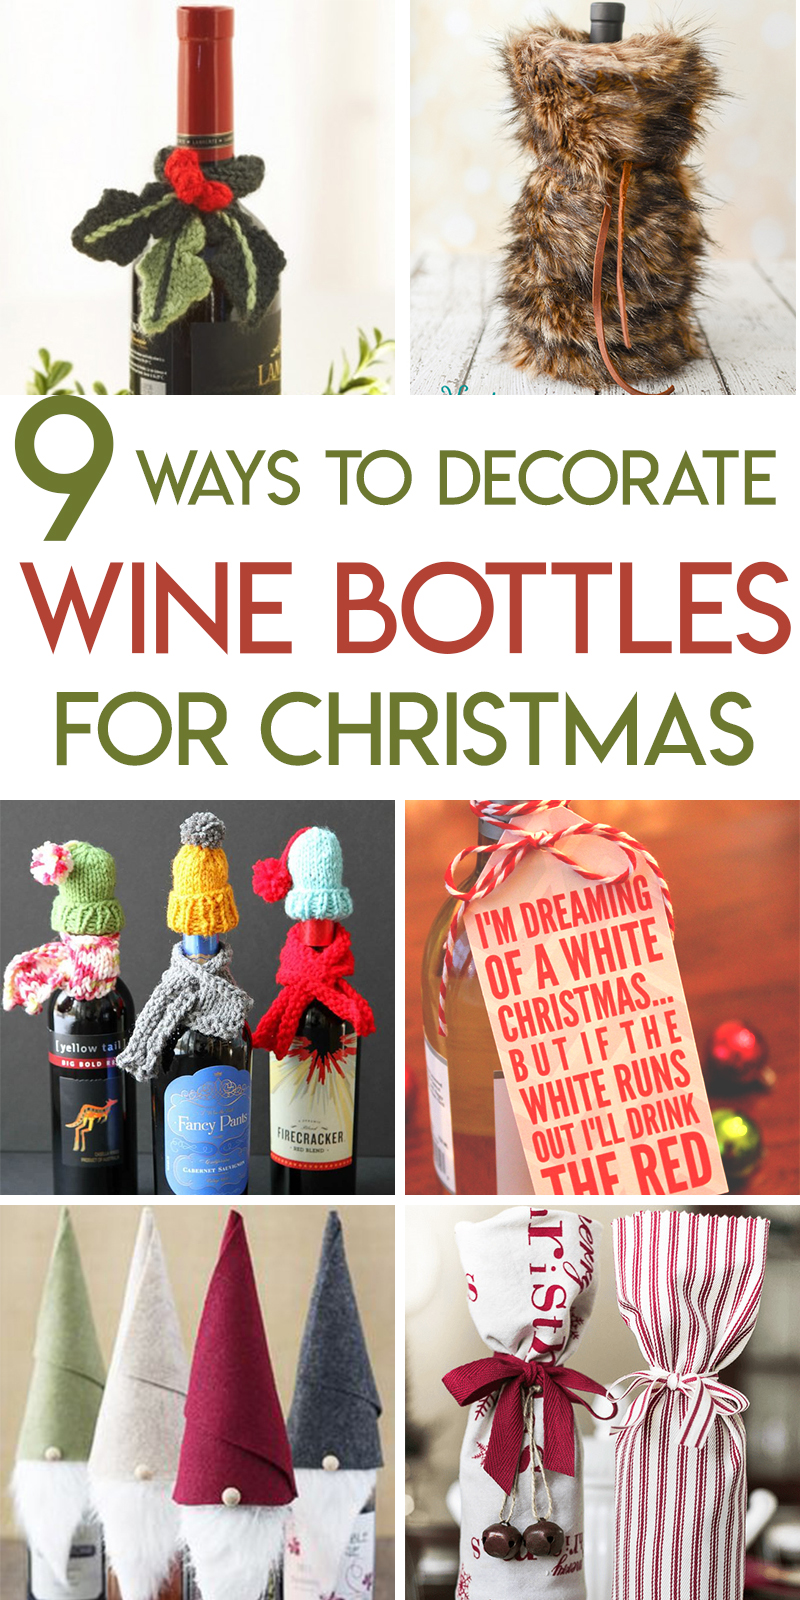 9 ways to decorate wine bottles for christmas hostess gifts